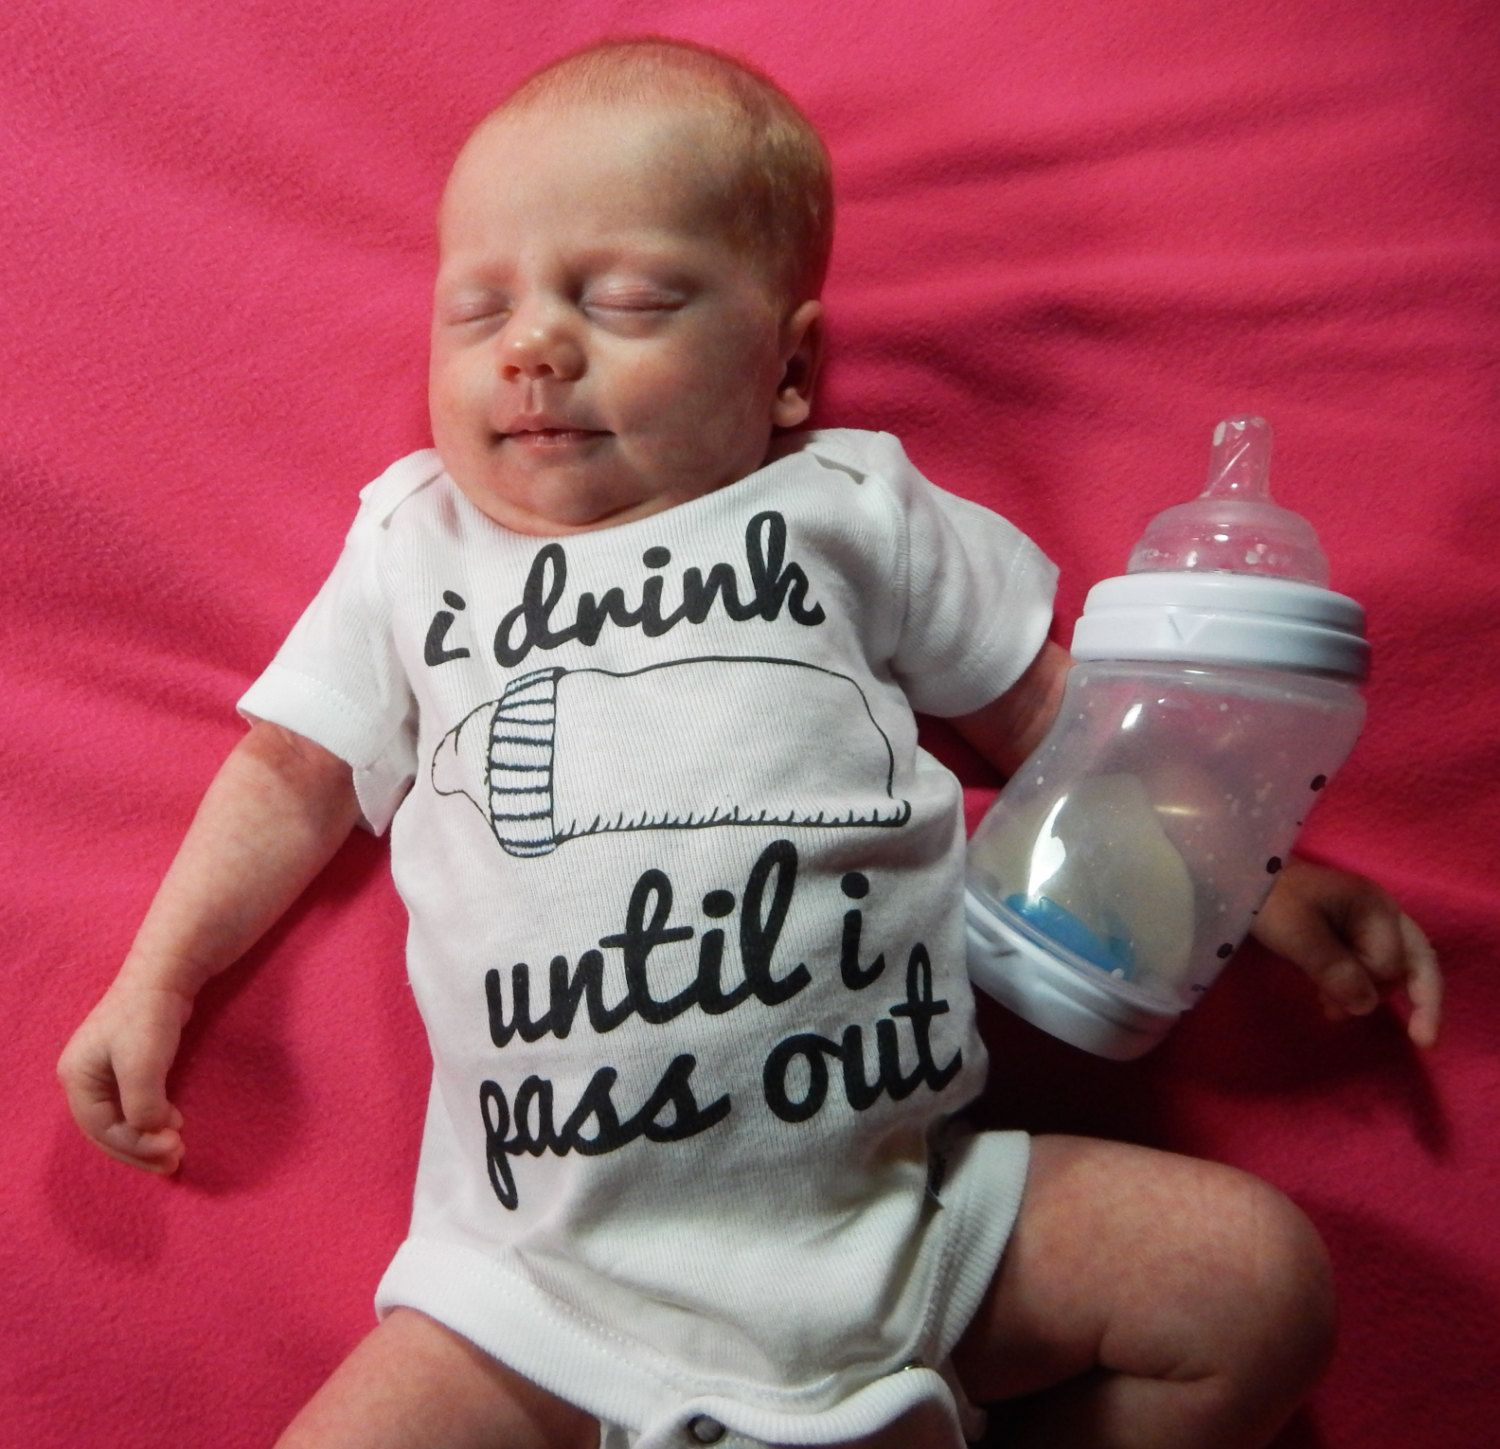 Baby Clothes, Baby Onesie Brand, Baby Boy Clothes, Baby Girl Clothes, Funny Baby Clothes, Baby Shirt, Baby TShirt, Cute Baby Clothing by BabeeBees on Etsy https://www.etsy.com/listing/161568086/baby-clothes-baby-onesie-brand-baby-boy